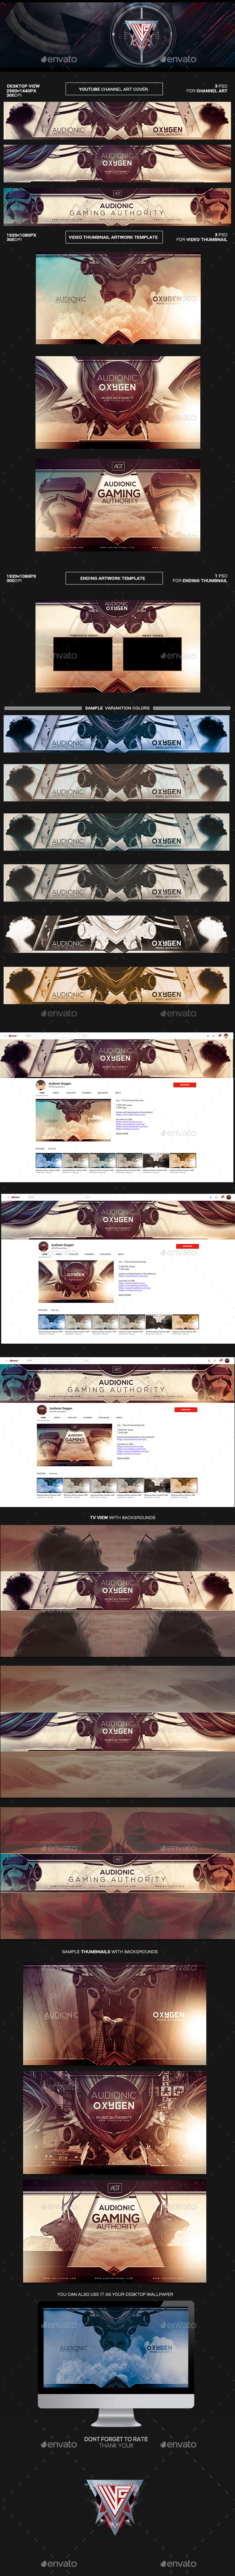 Audionic Oxygen Youtube Channel Art/Video Thumbnail and Ending Video Template - YouTube Social Media